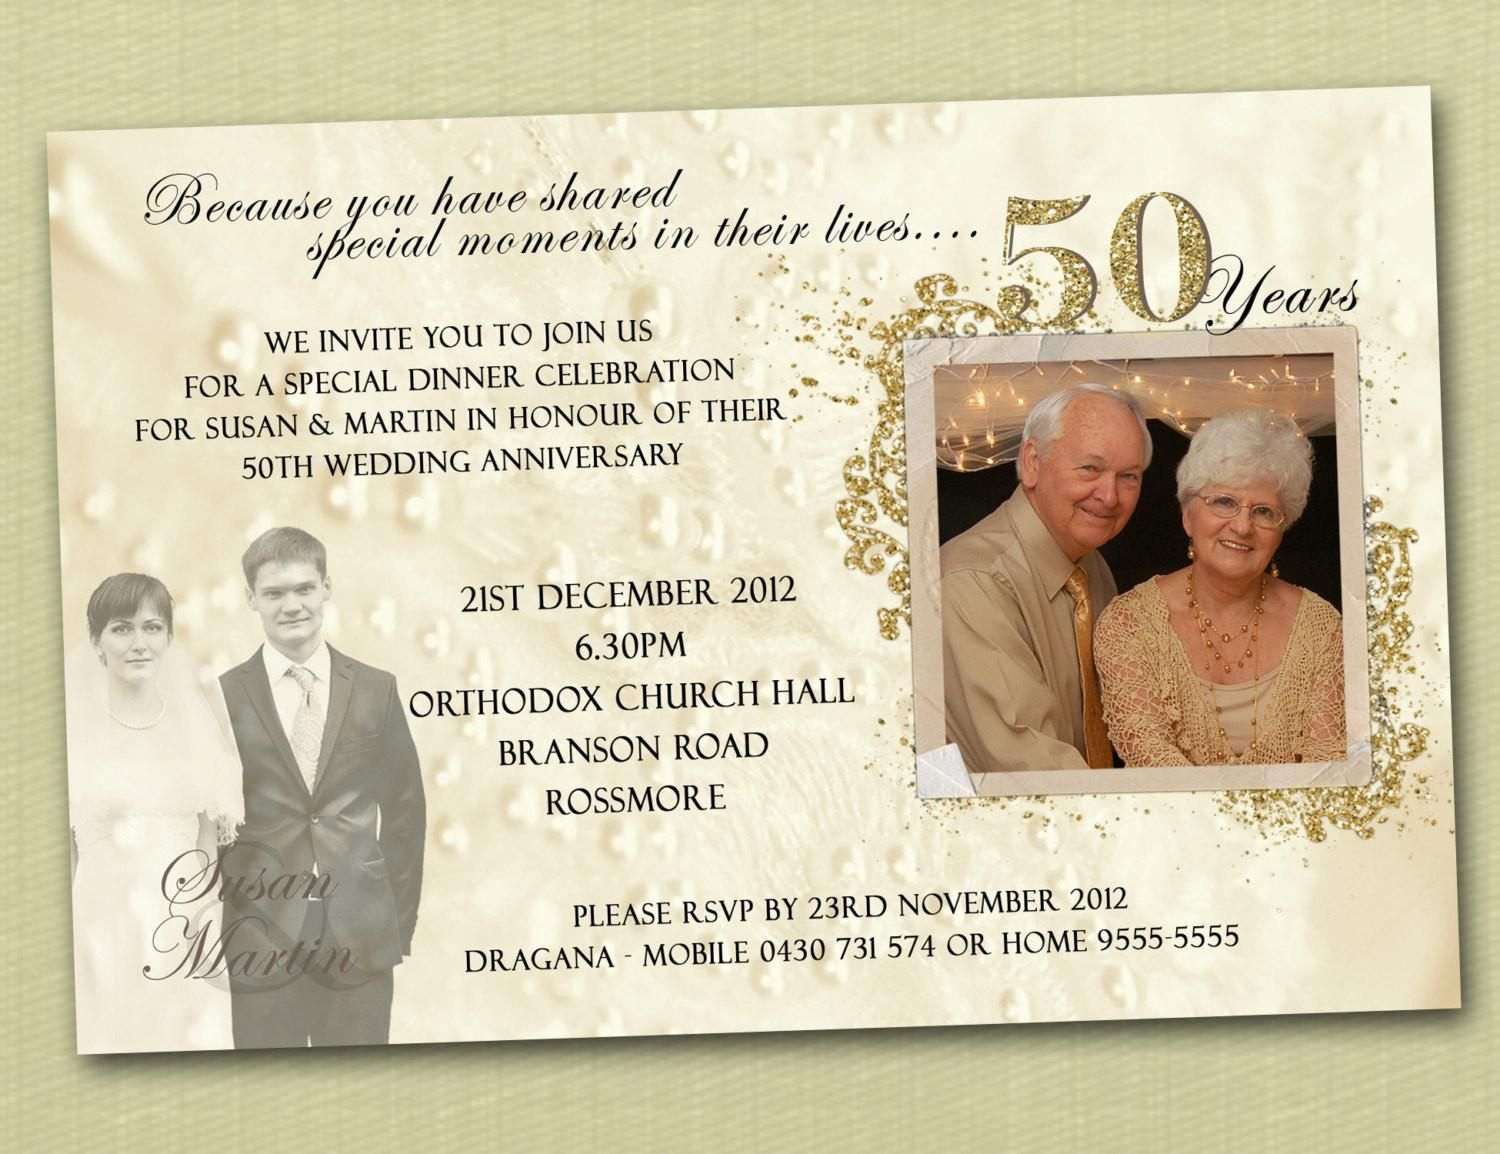 Golden wedding anniversary invitations golden wedding anniversary golden wedding anniversary invitations golden wedding anniversary invitations templates superb invitation superb invitation stopboris Choice Image